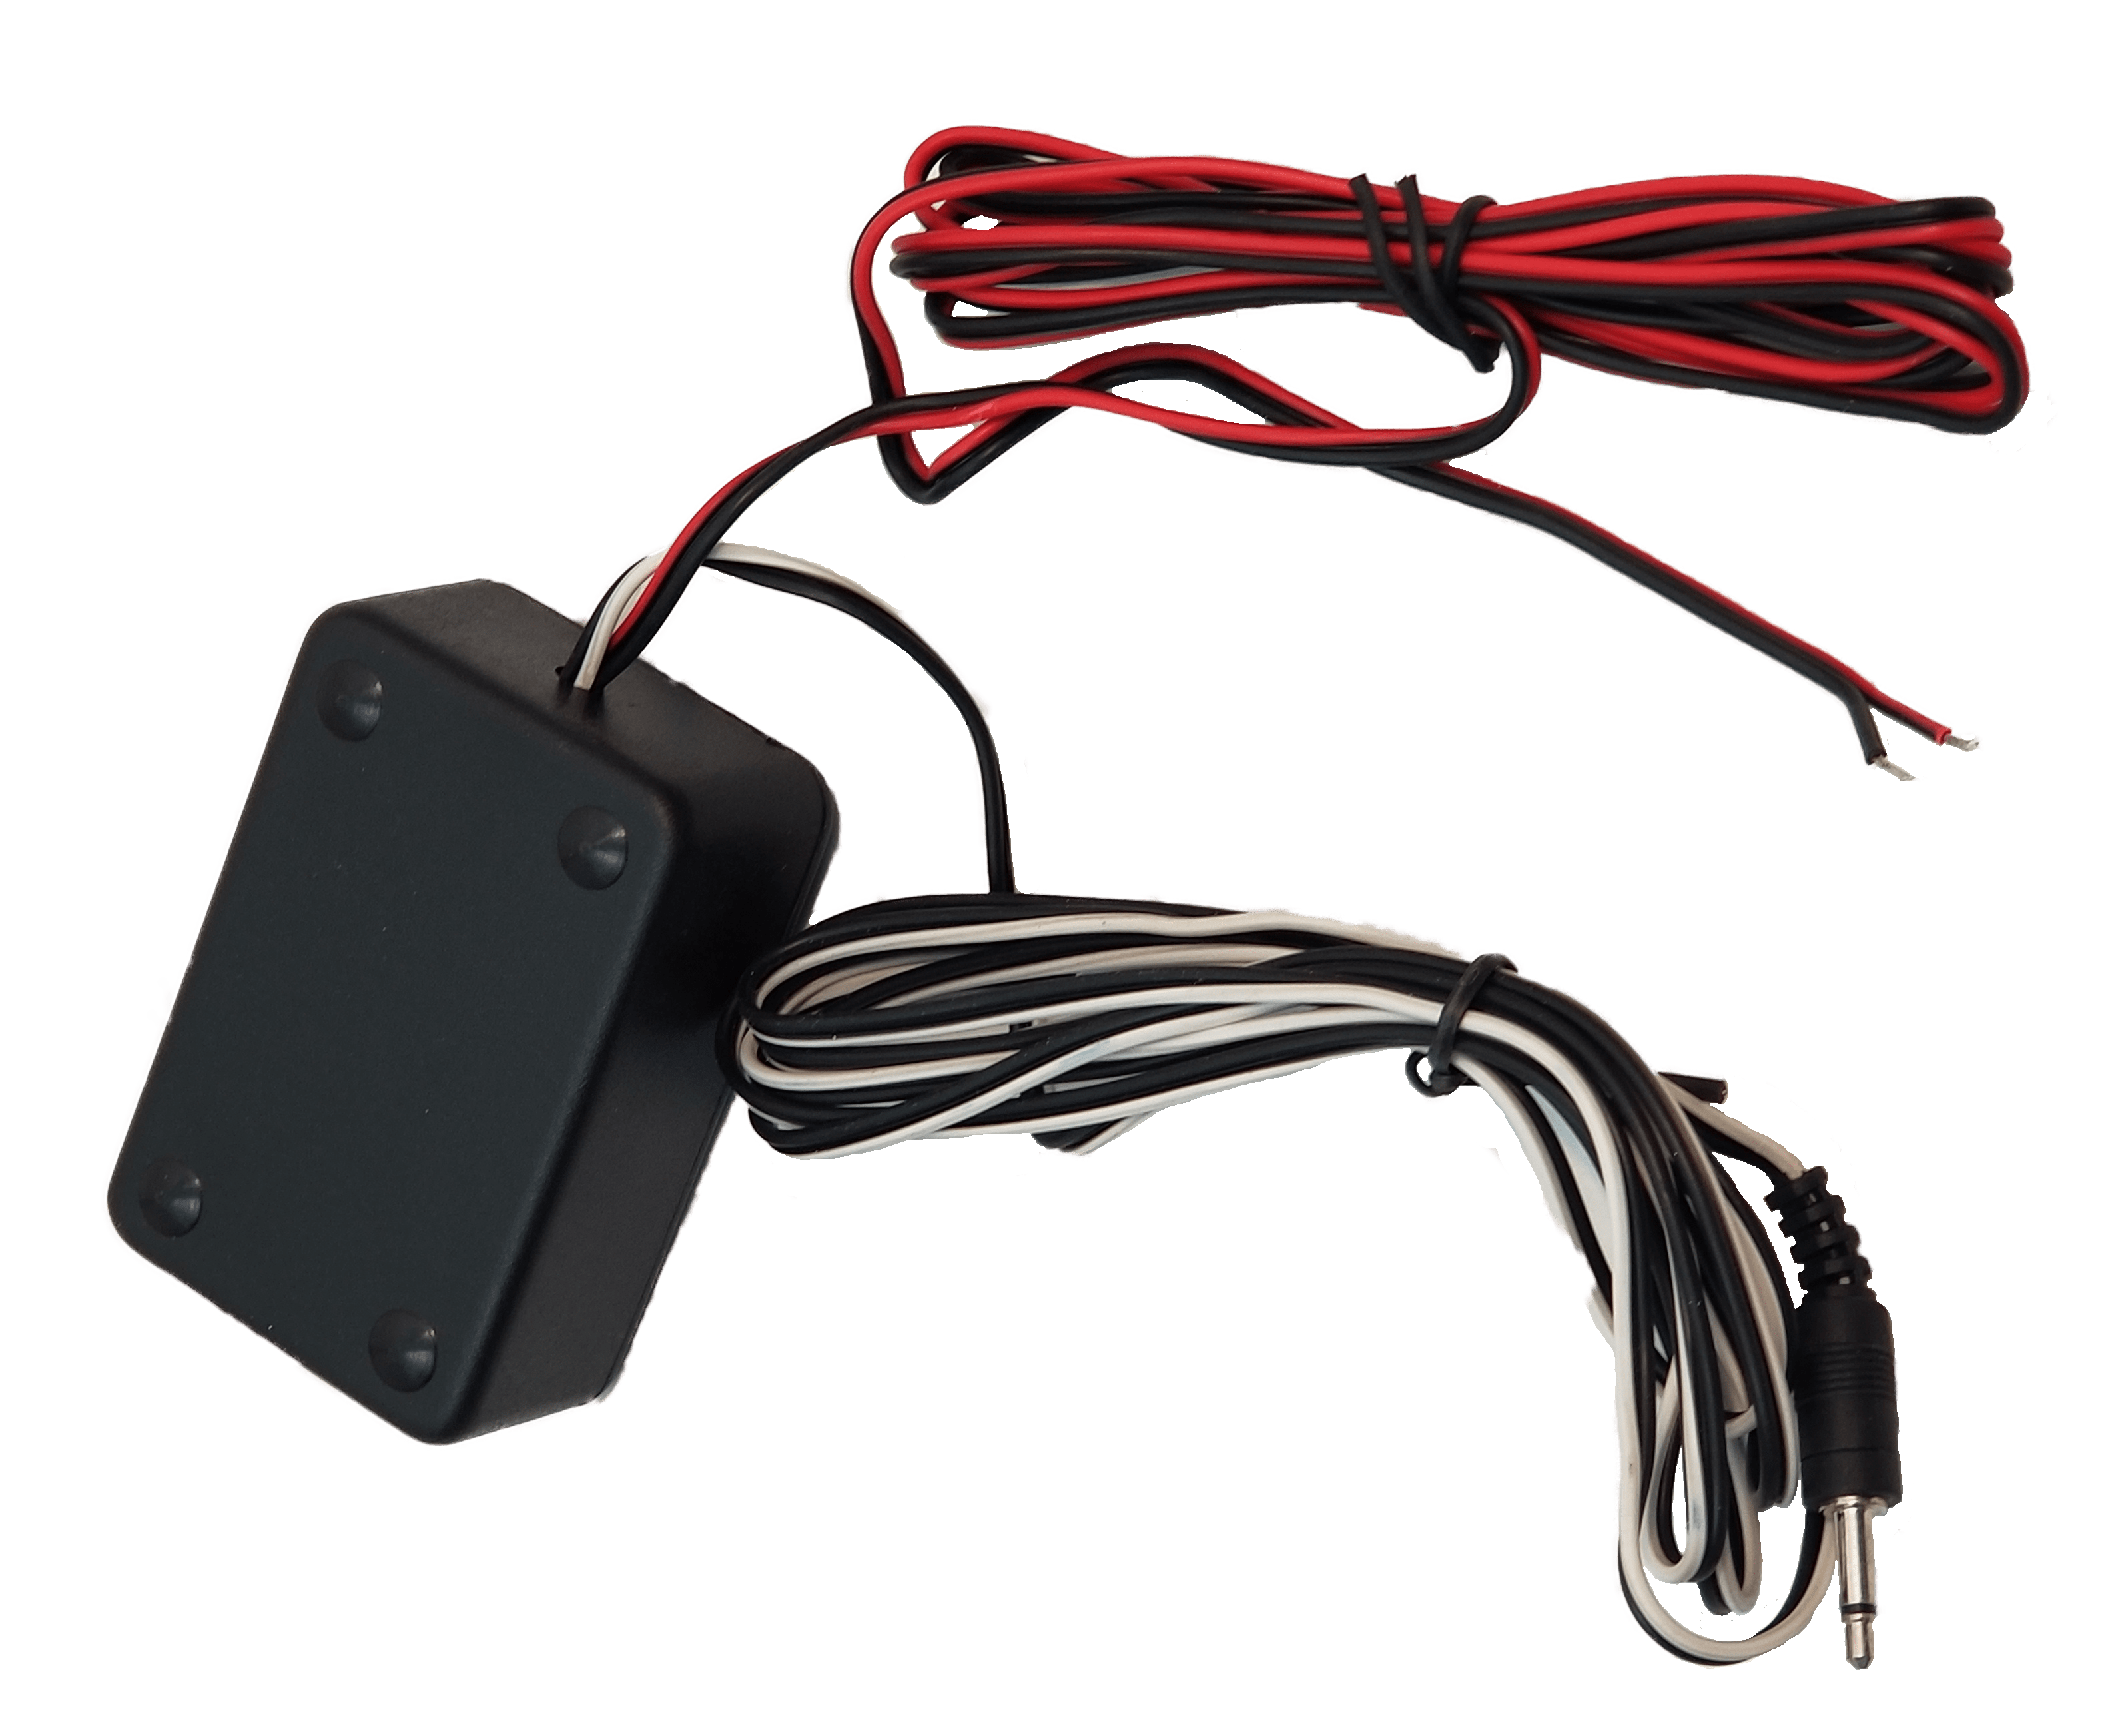 LM - Twinpoint Loud Mouth Amplifier With 3.5mm Plug